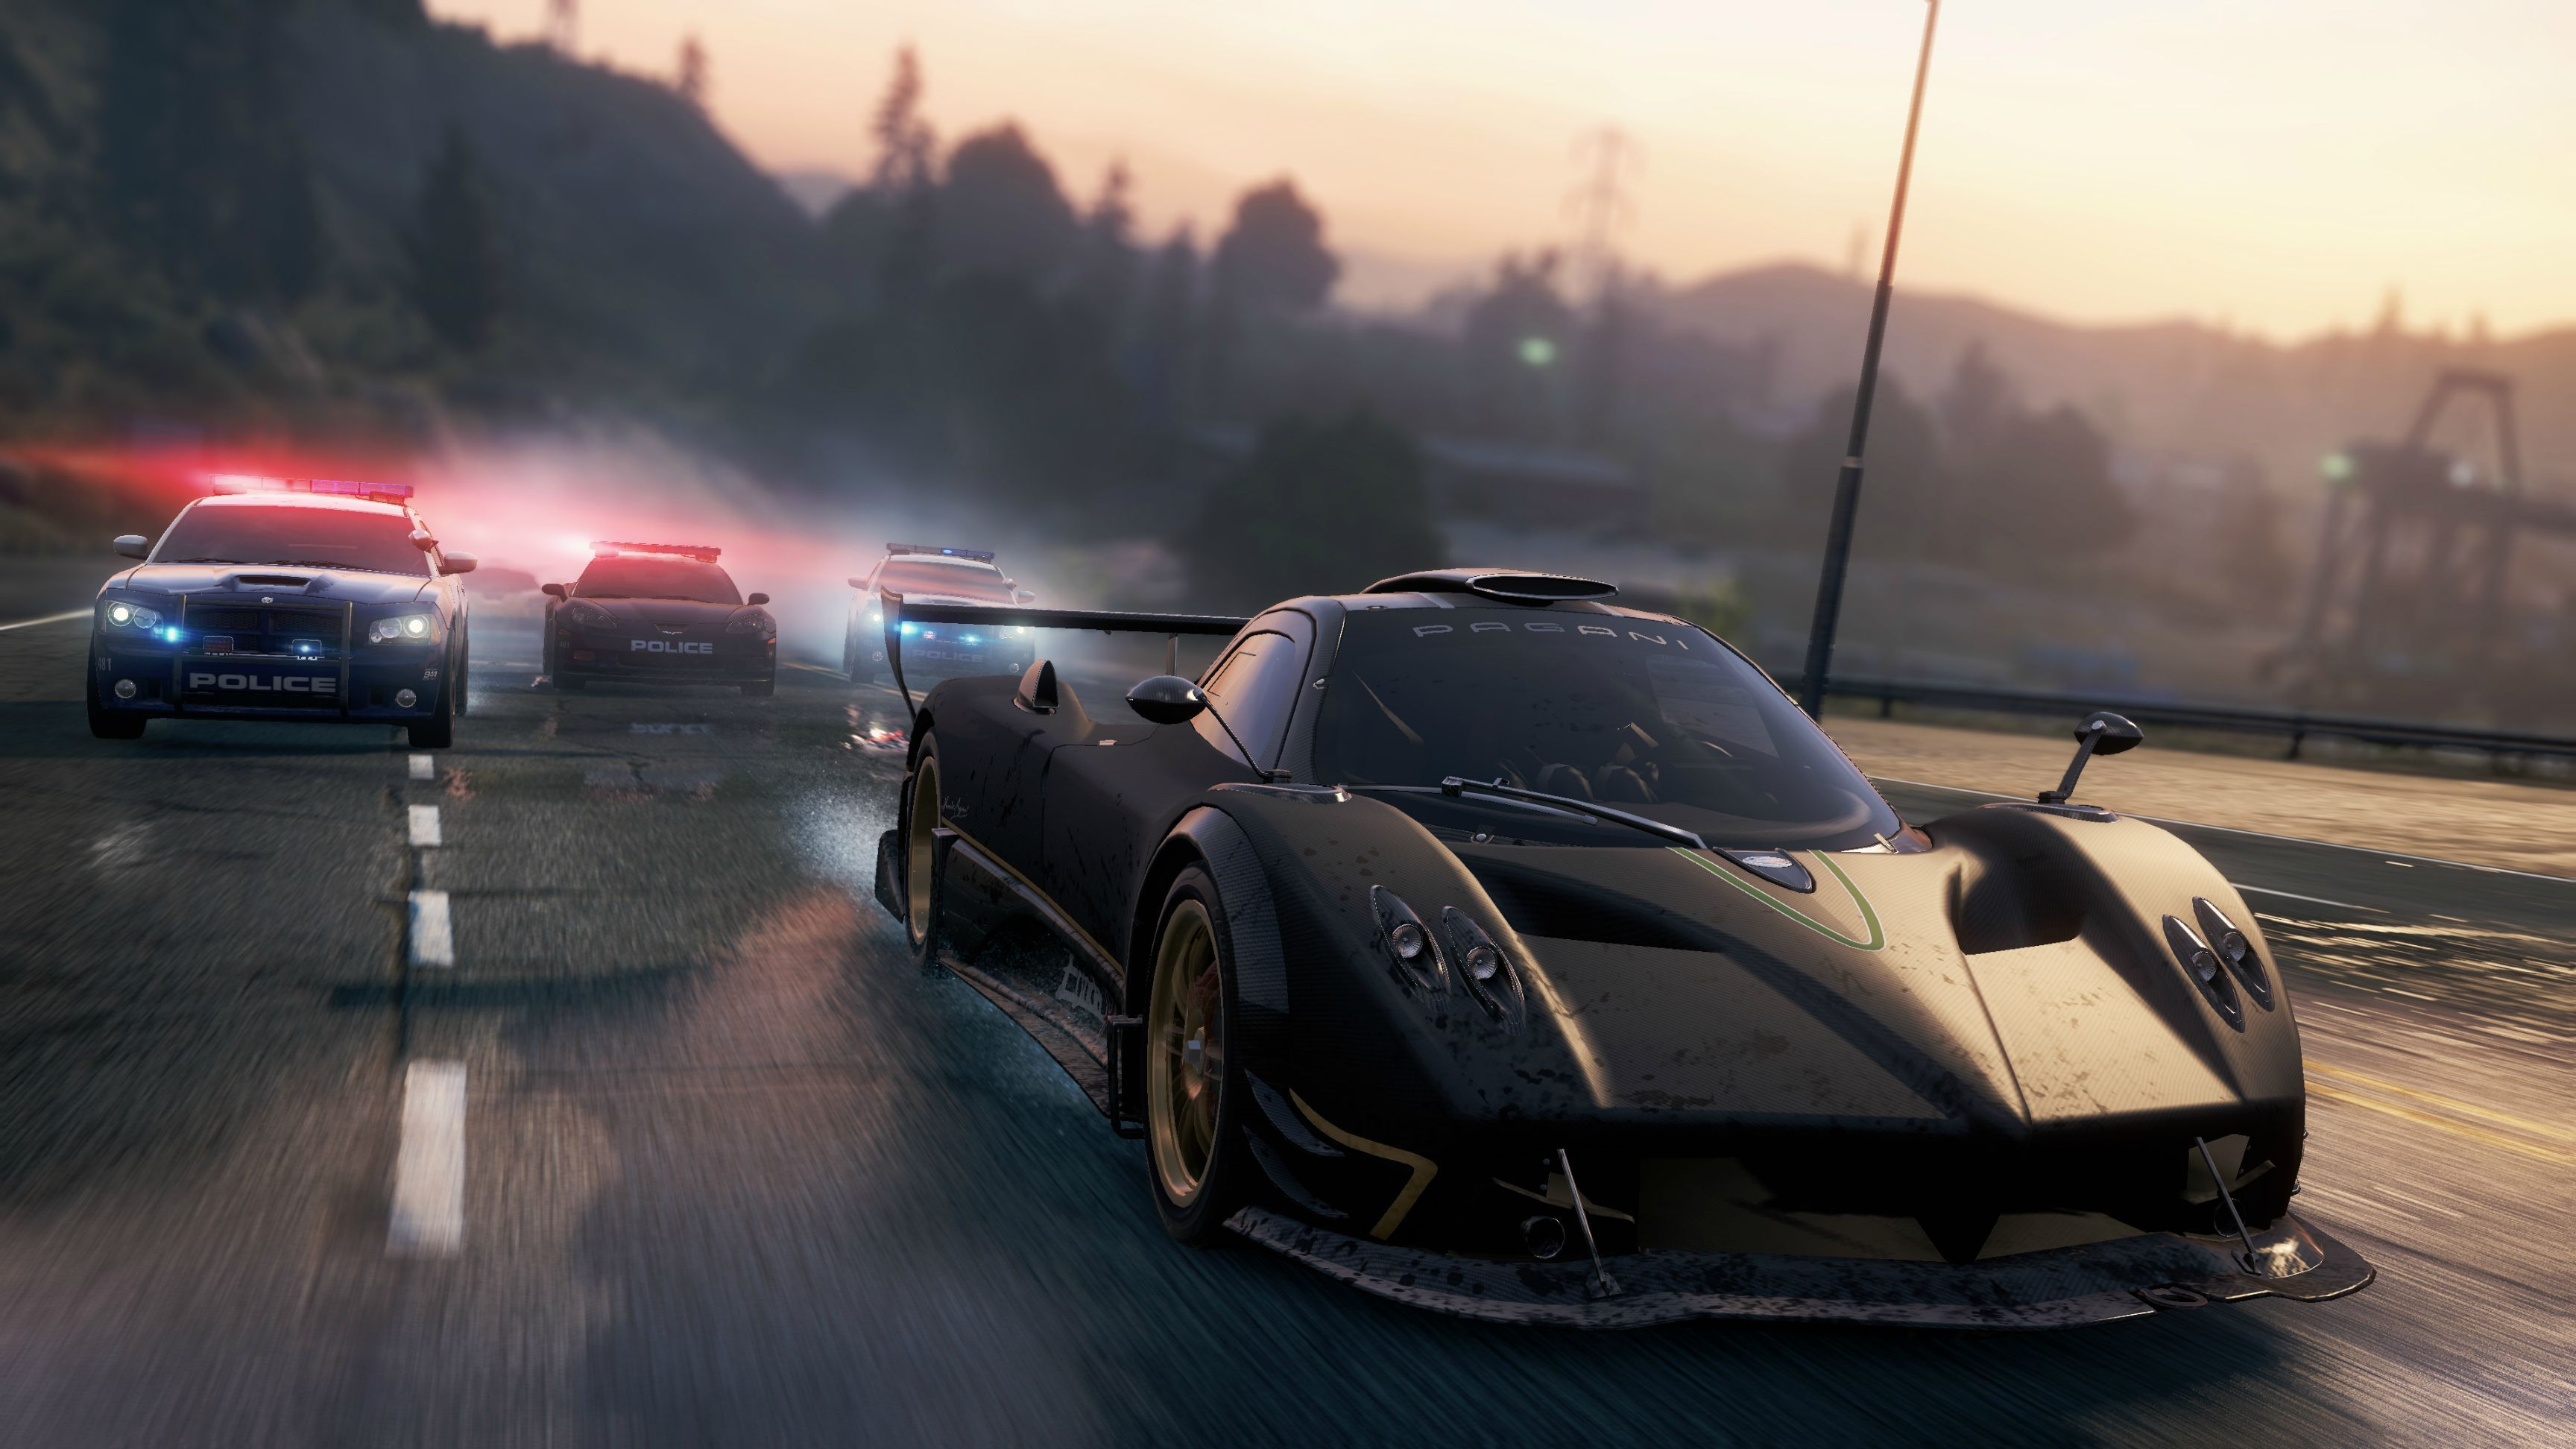 The Complete Need for Speed Car Guide